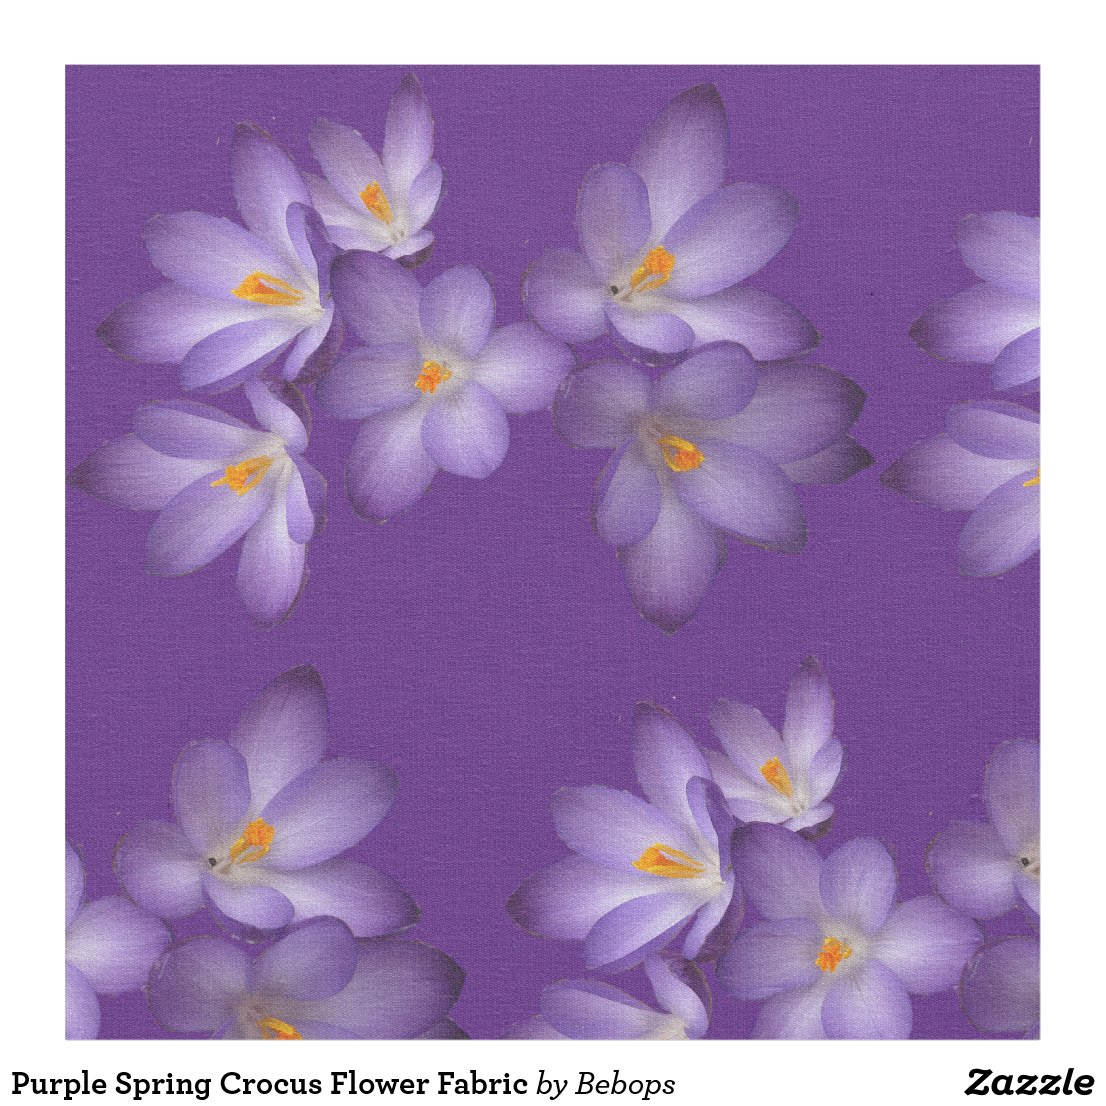 Purple Spring Crocus Flower Fabric